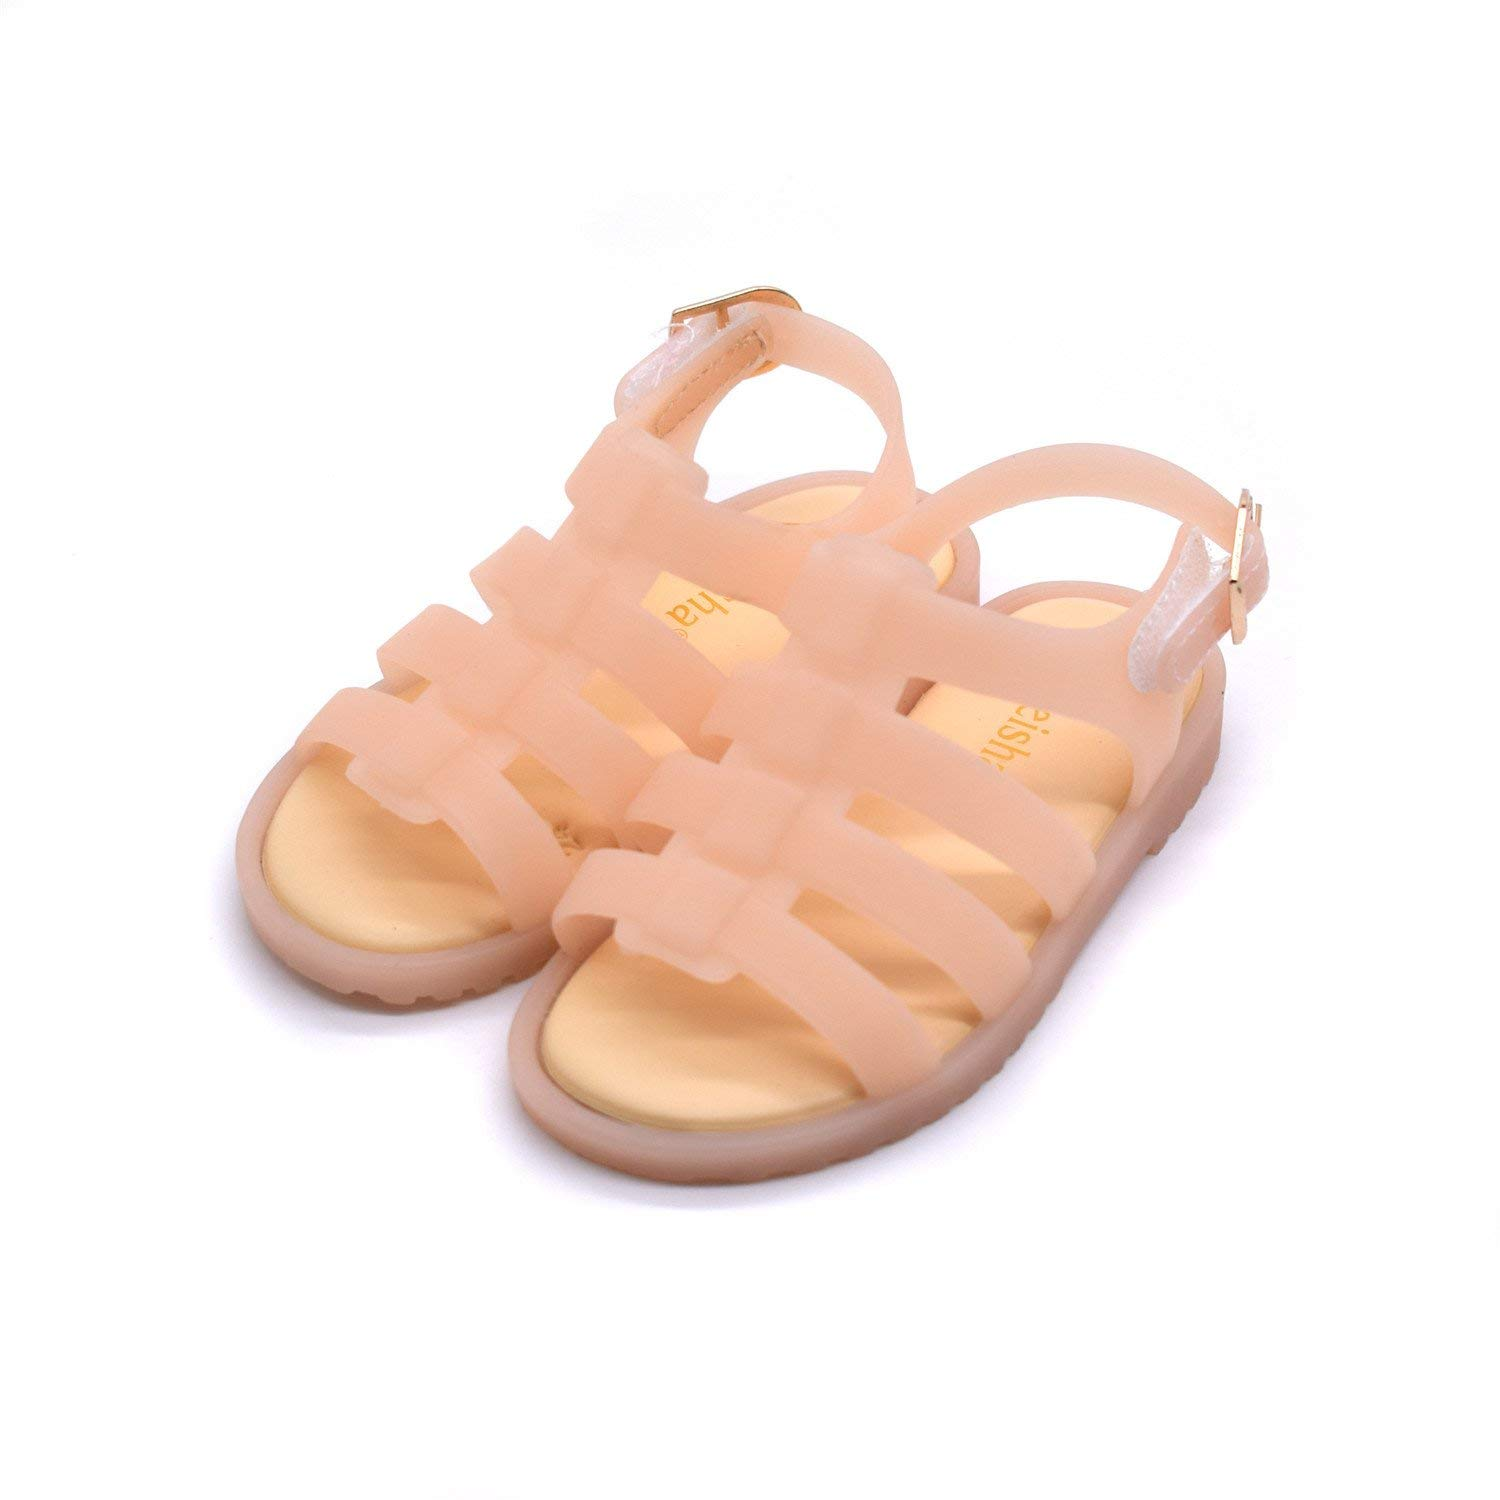 6a092e995 Get Quotations · Aworth Girl Roman Shoes Jelly Sandals Children Sandals  Jelly Shoes Sandals Breathable Girls Boy Sandals